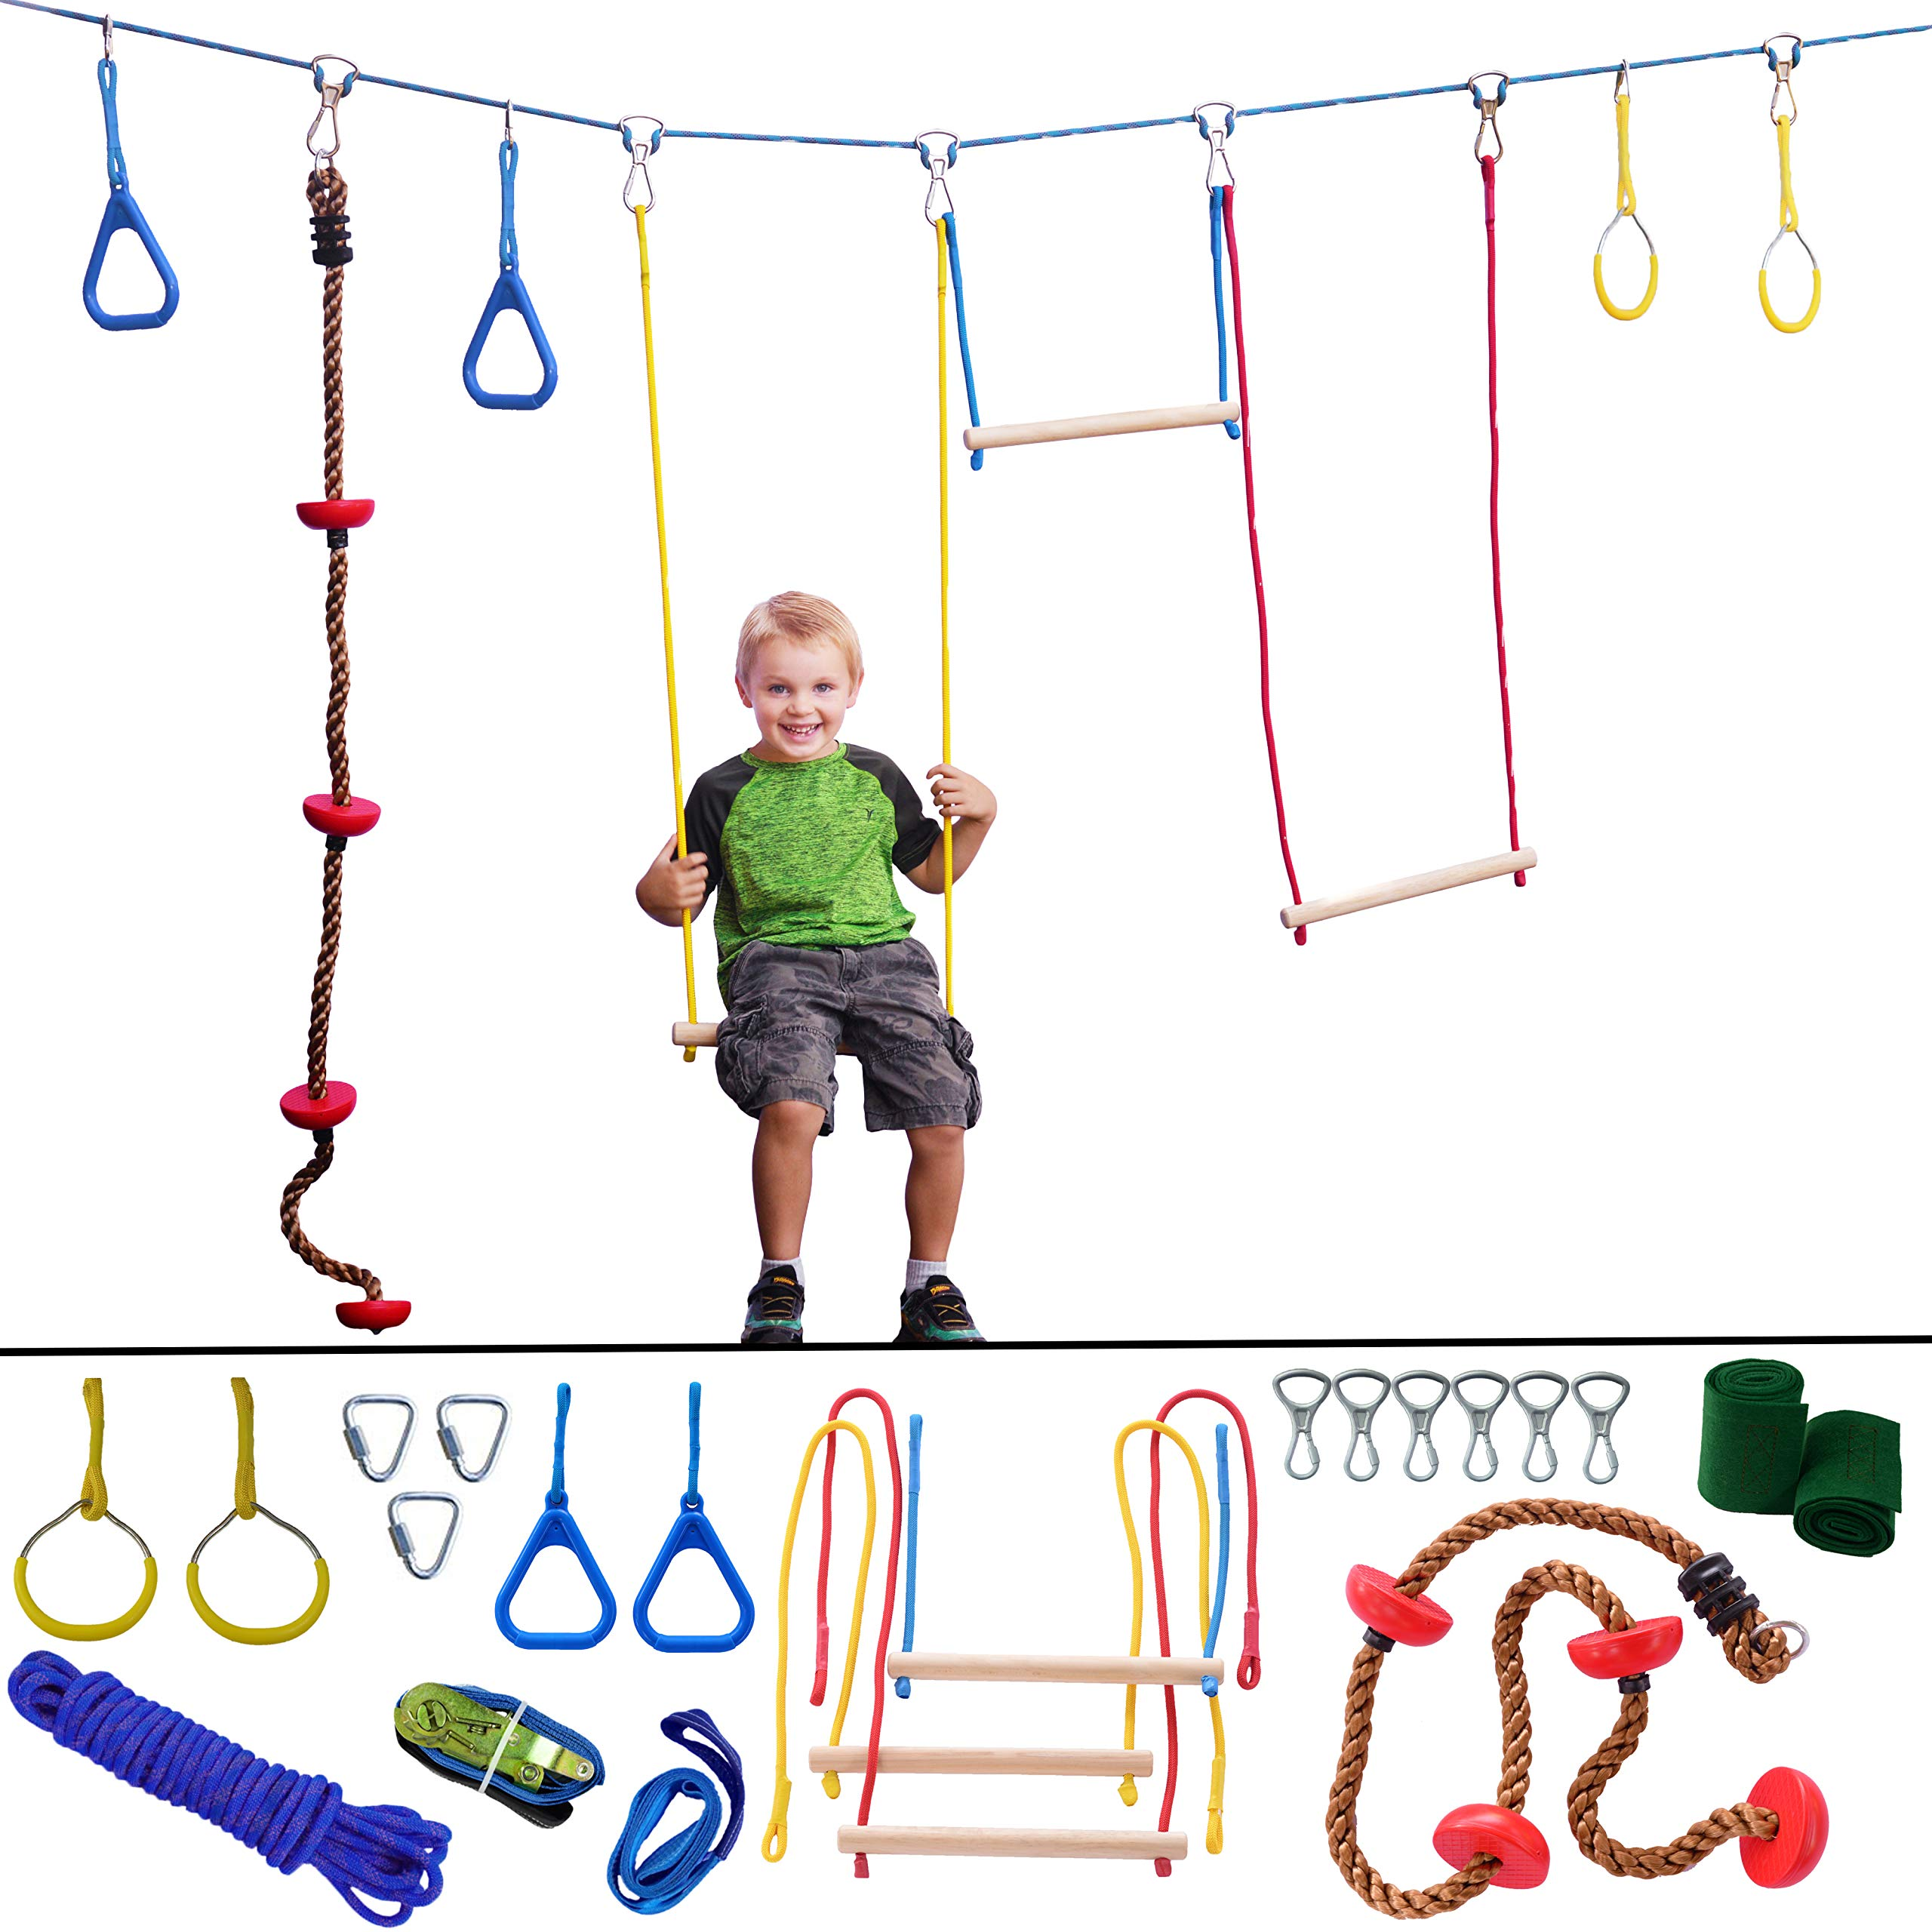 Ninja Hanging Obstacle Course Playground